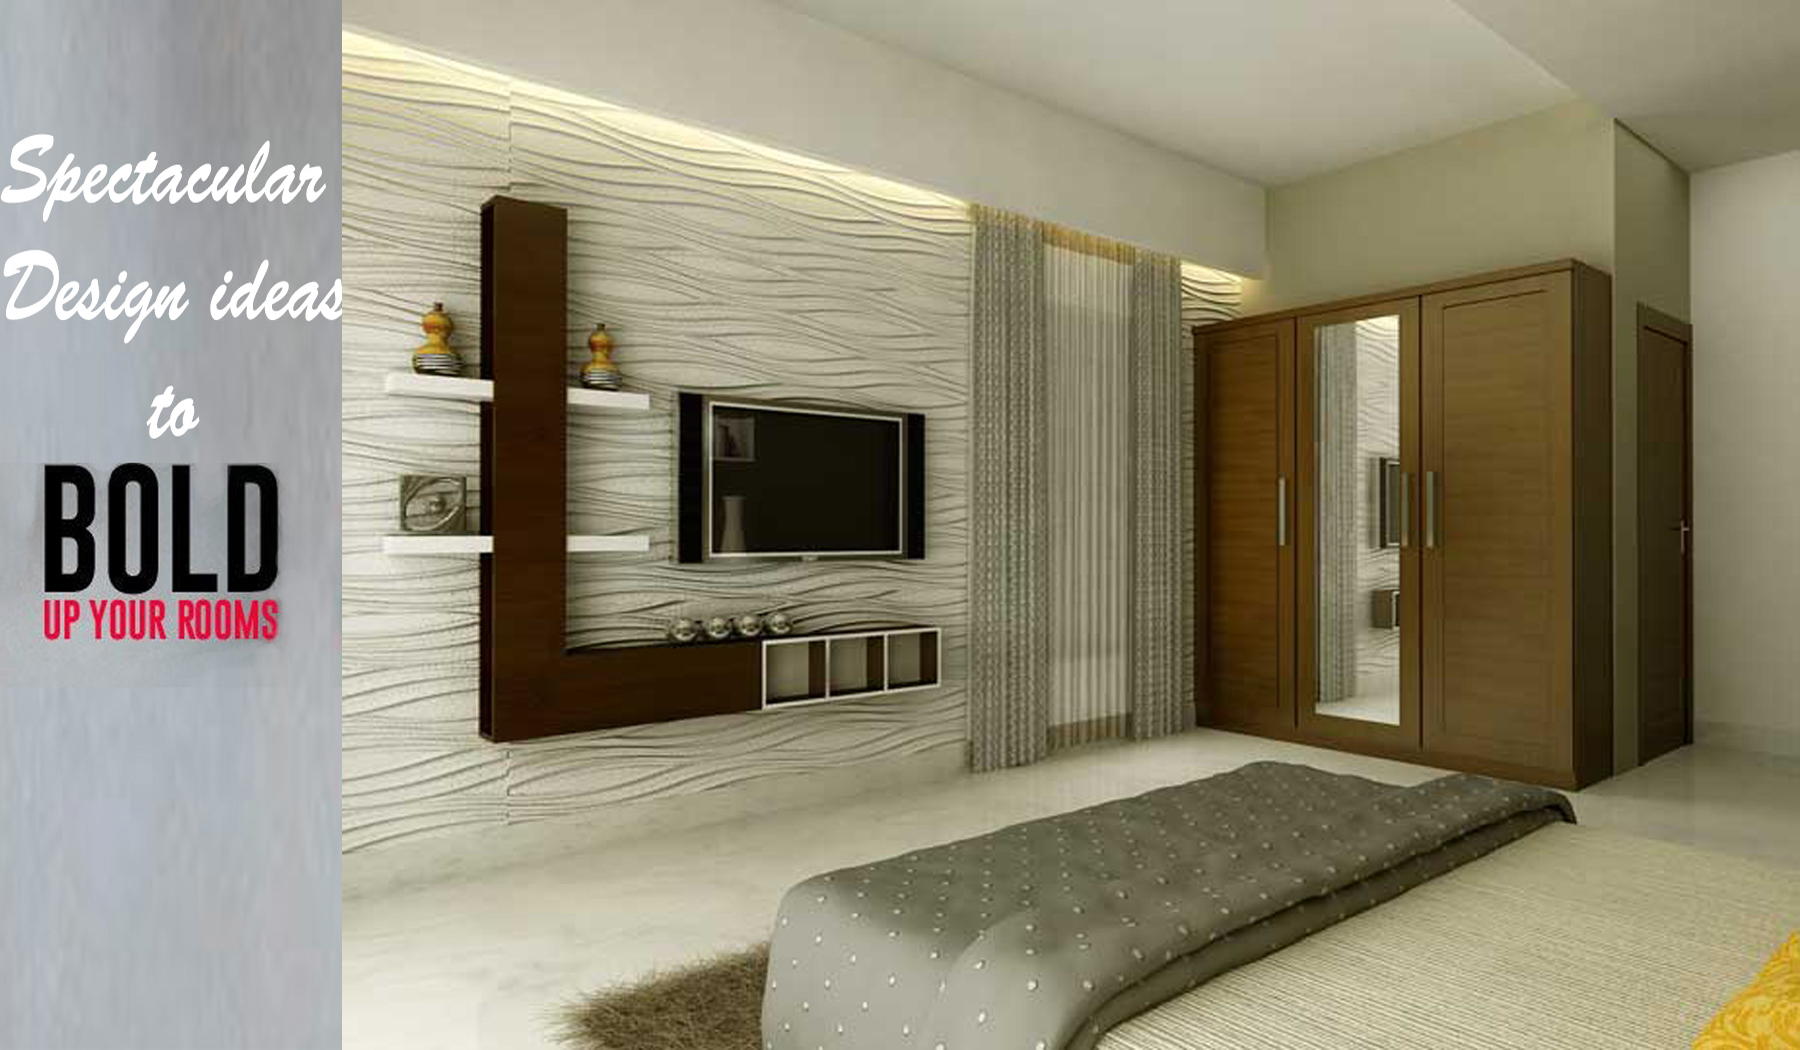 Home interior designers chennai interior designers in chennai interior decorators in chennai Design interior